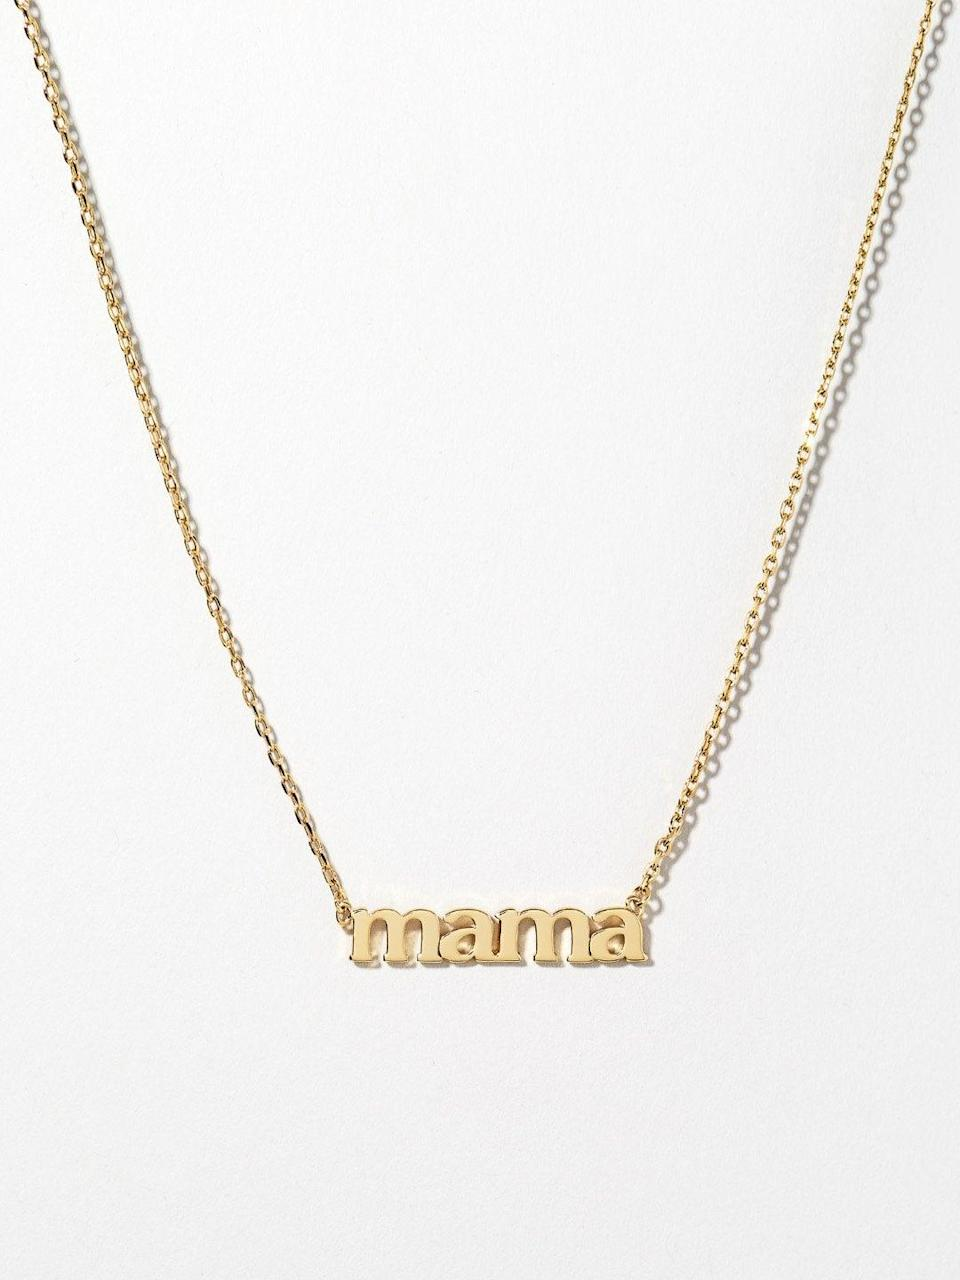 "<h2>Ana Luisa ""Mama"" Necklace</h2><br><br><strong>Ana Luisa</strong> Mama Necklace, $, available at <a href=""https://go.skimresources.com/?id=30283X879131&url=https%3A%2F%2Fwww.analuisa.com%2Fproducts%2Fmama-necklace"" rel=""nofollow noopener"" target=""_blank"" data-ylk=""slk:Ana Luisa"" class=""link rapid-noclick-resp"">Ana Luisa</a>"